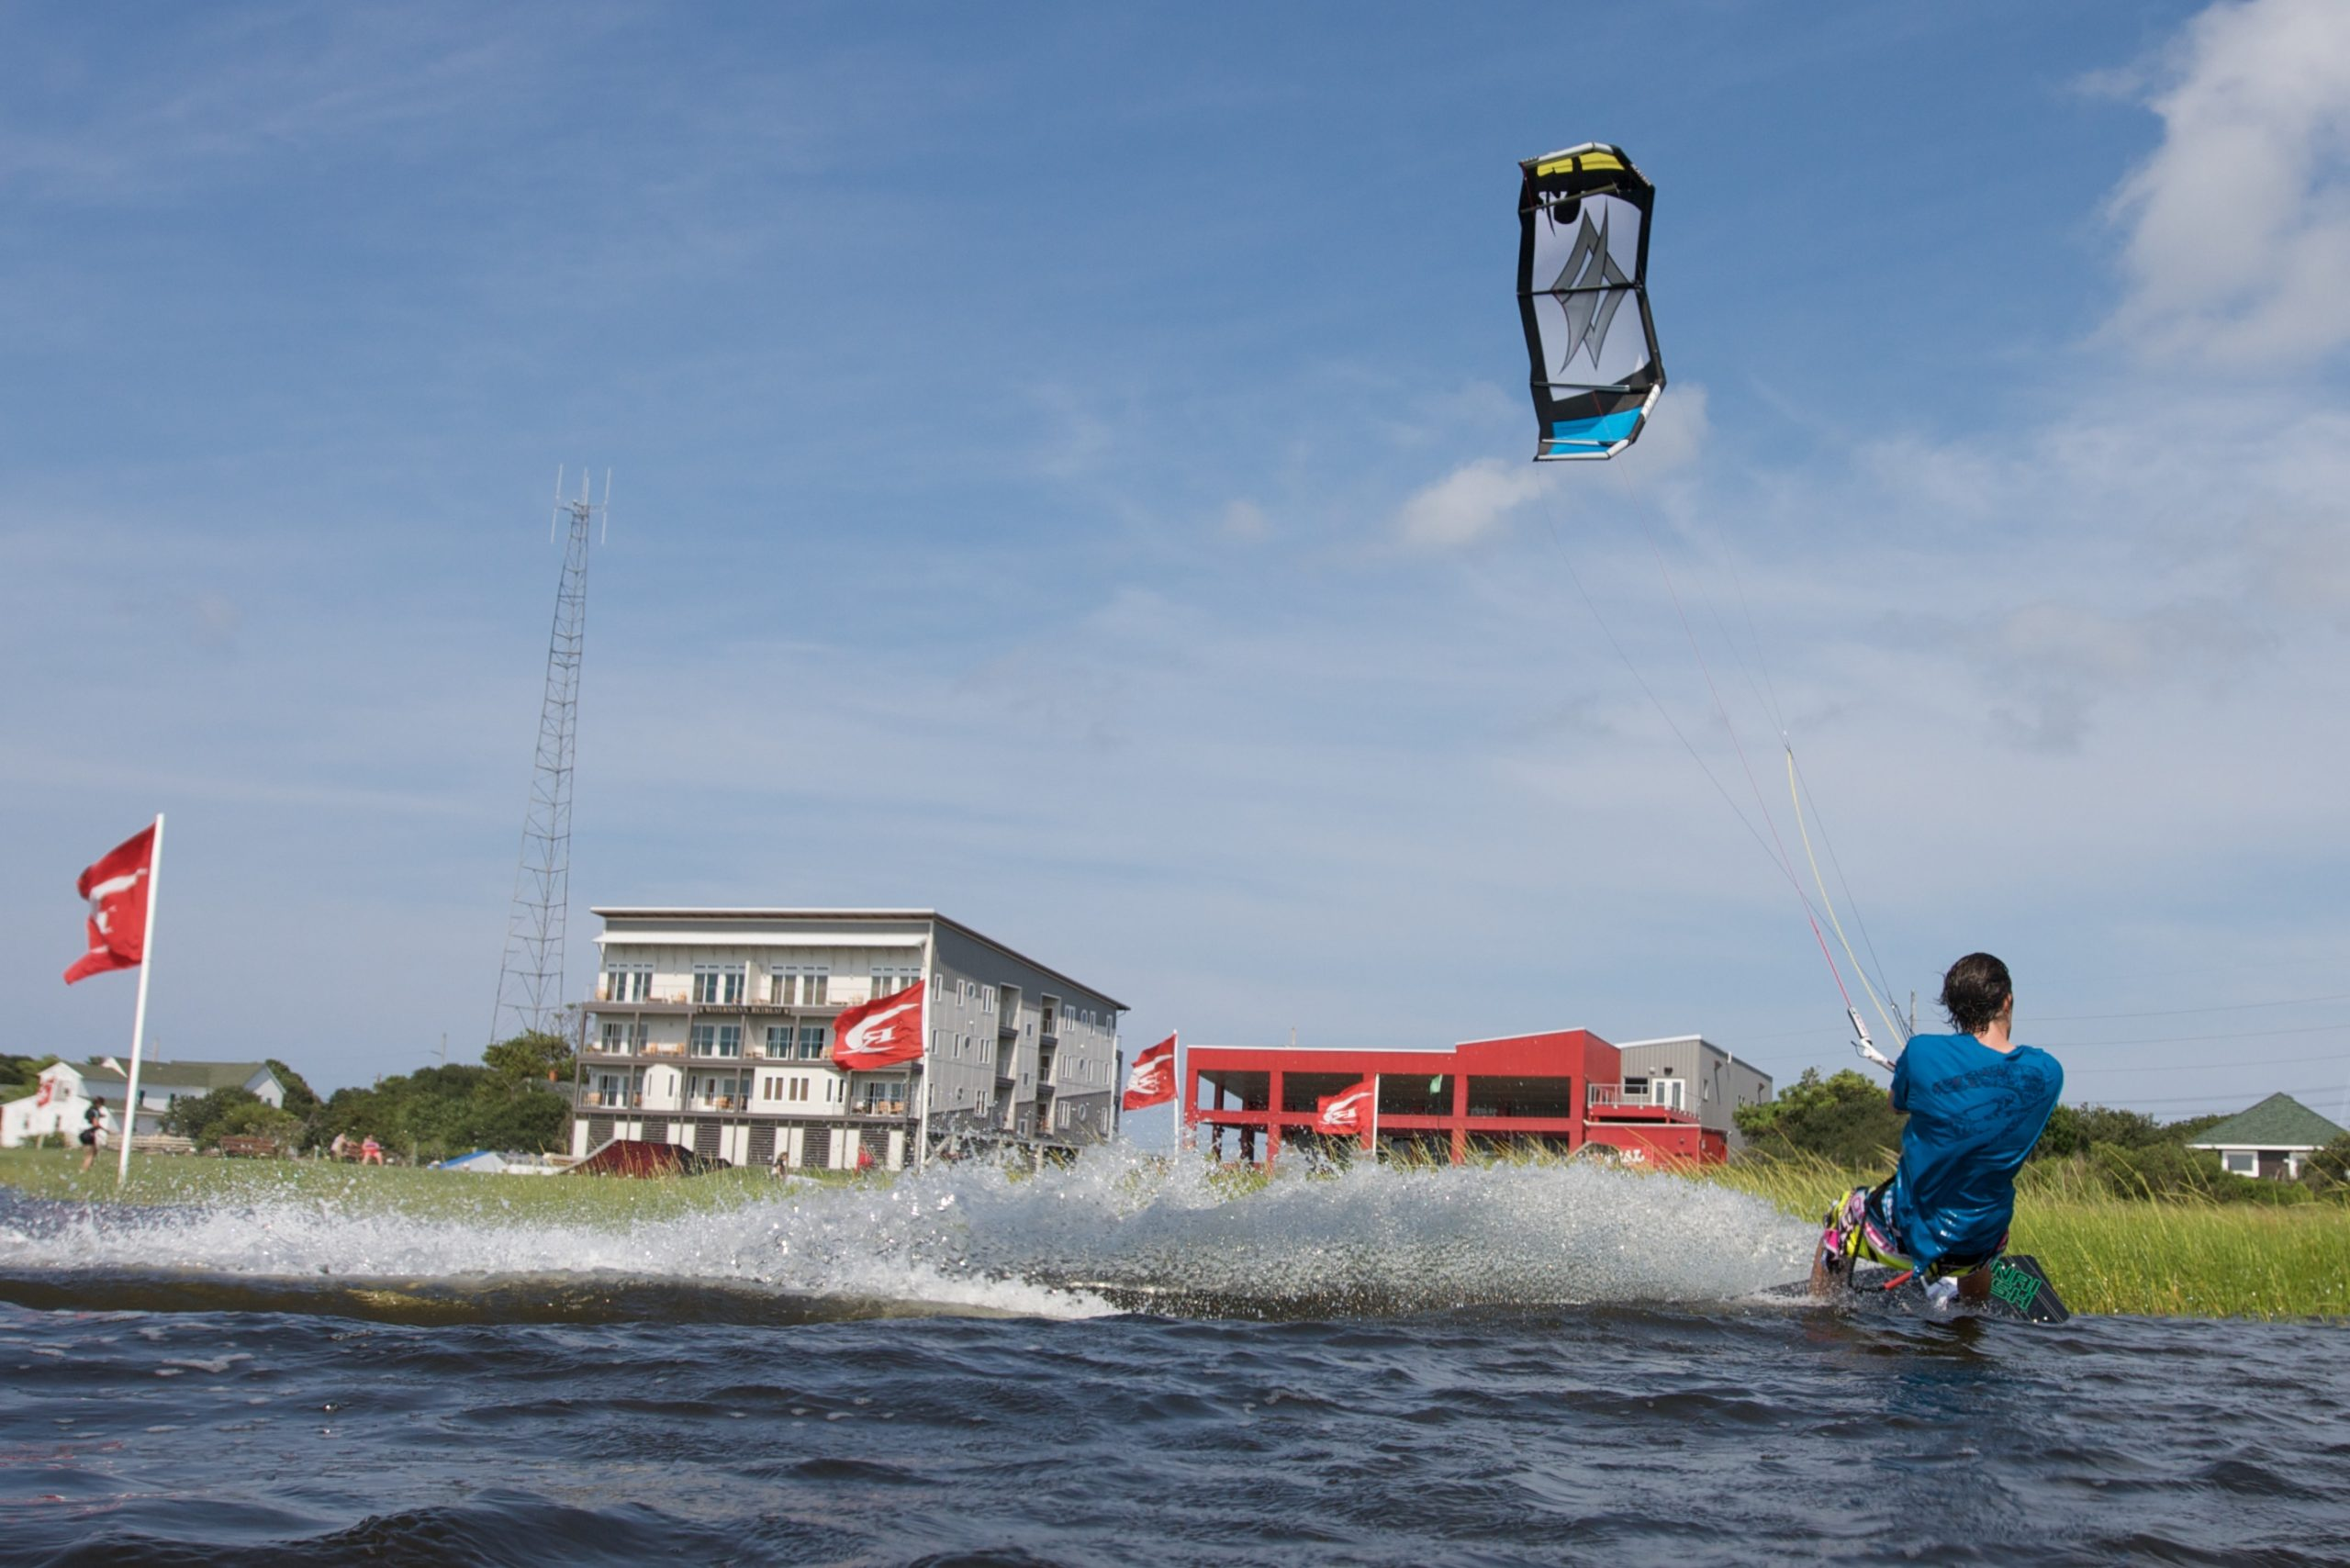 Surf gliding is one of many sports events hosted in North Carolina